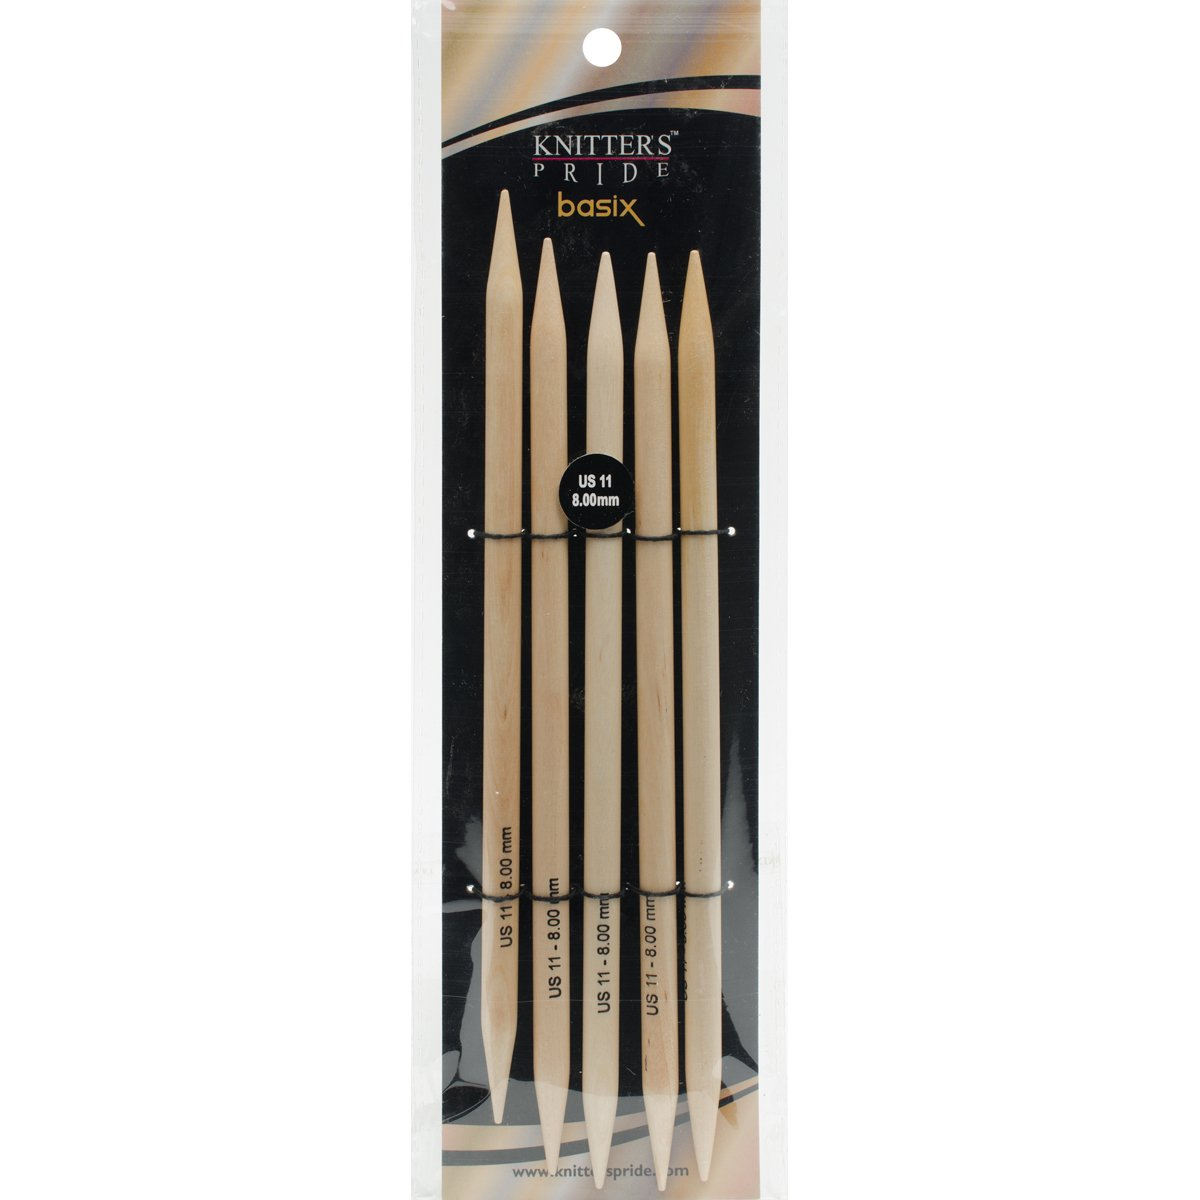 Knitter's Pride Basix Double Pointed 8-inch (20cm) Knitting Needles; Size US 15 (10.0mm) 400103 Knitter's Pride BCAC19910